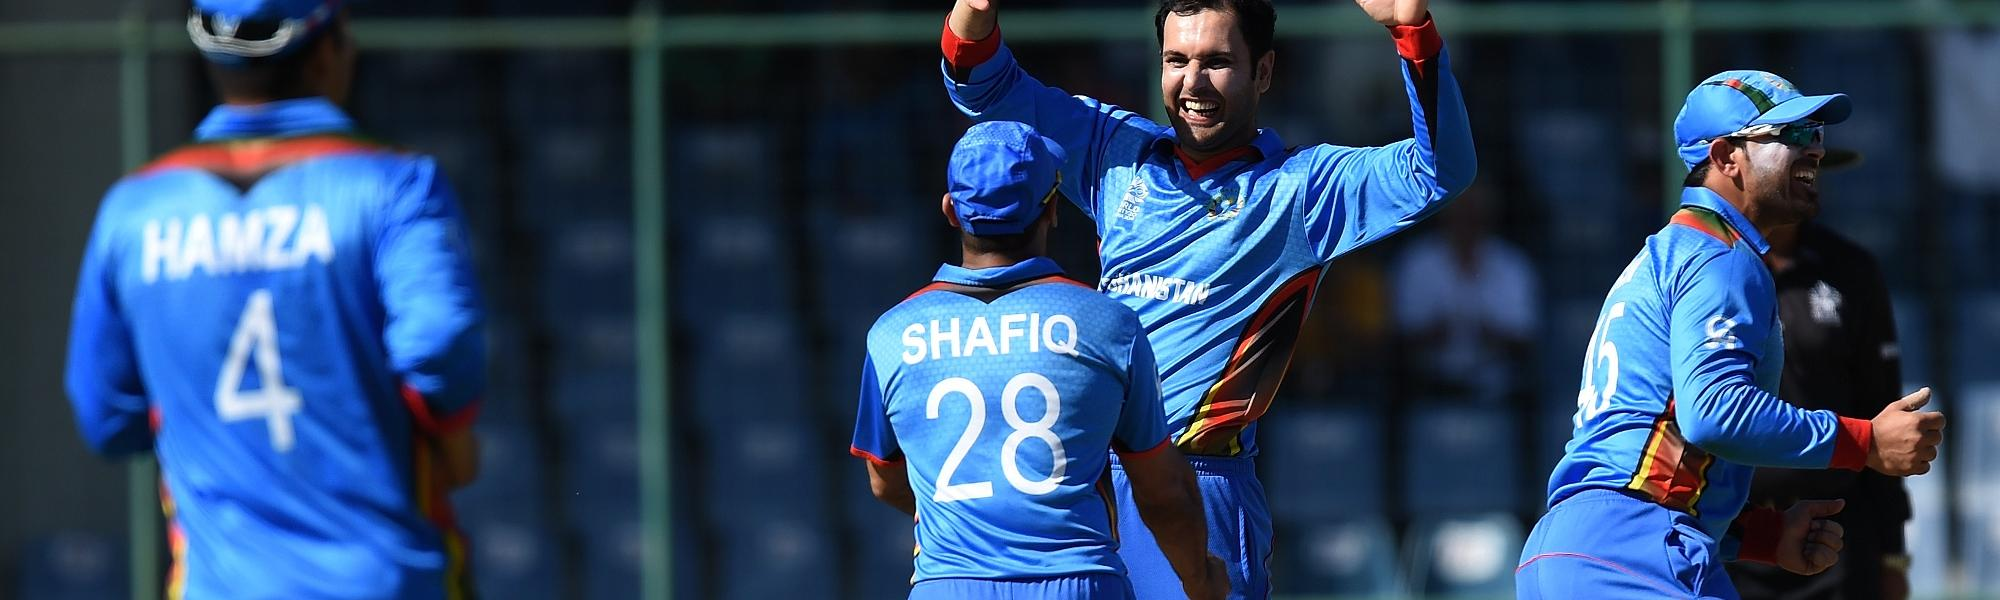 Mohammad Nabi (second from left) performed with bat and ball to help Afghanistan to a resounding win.